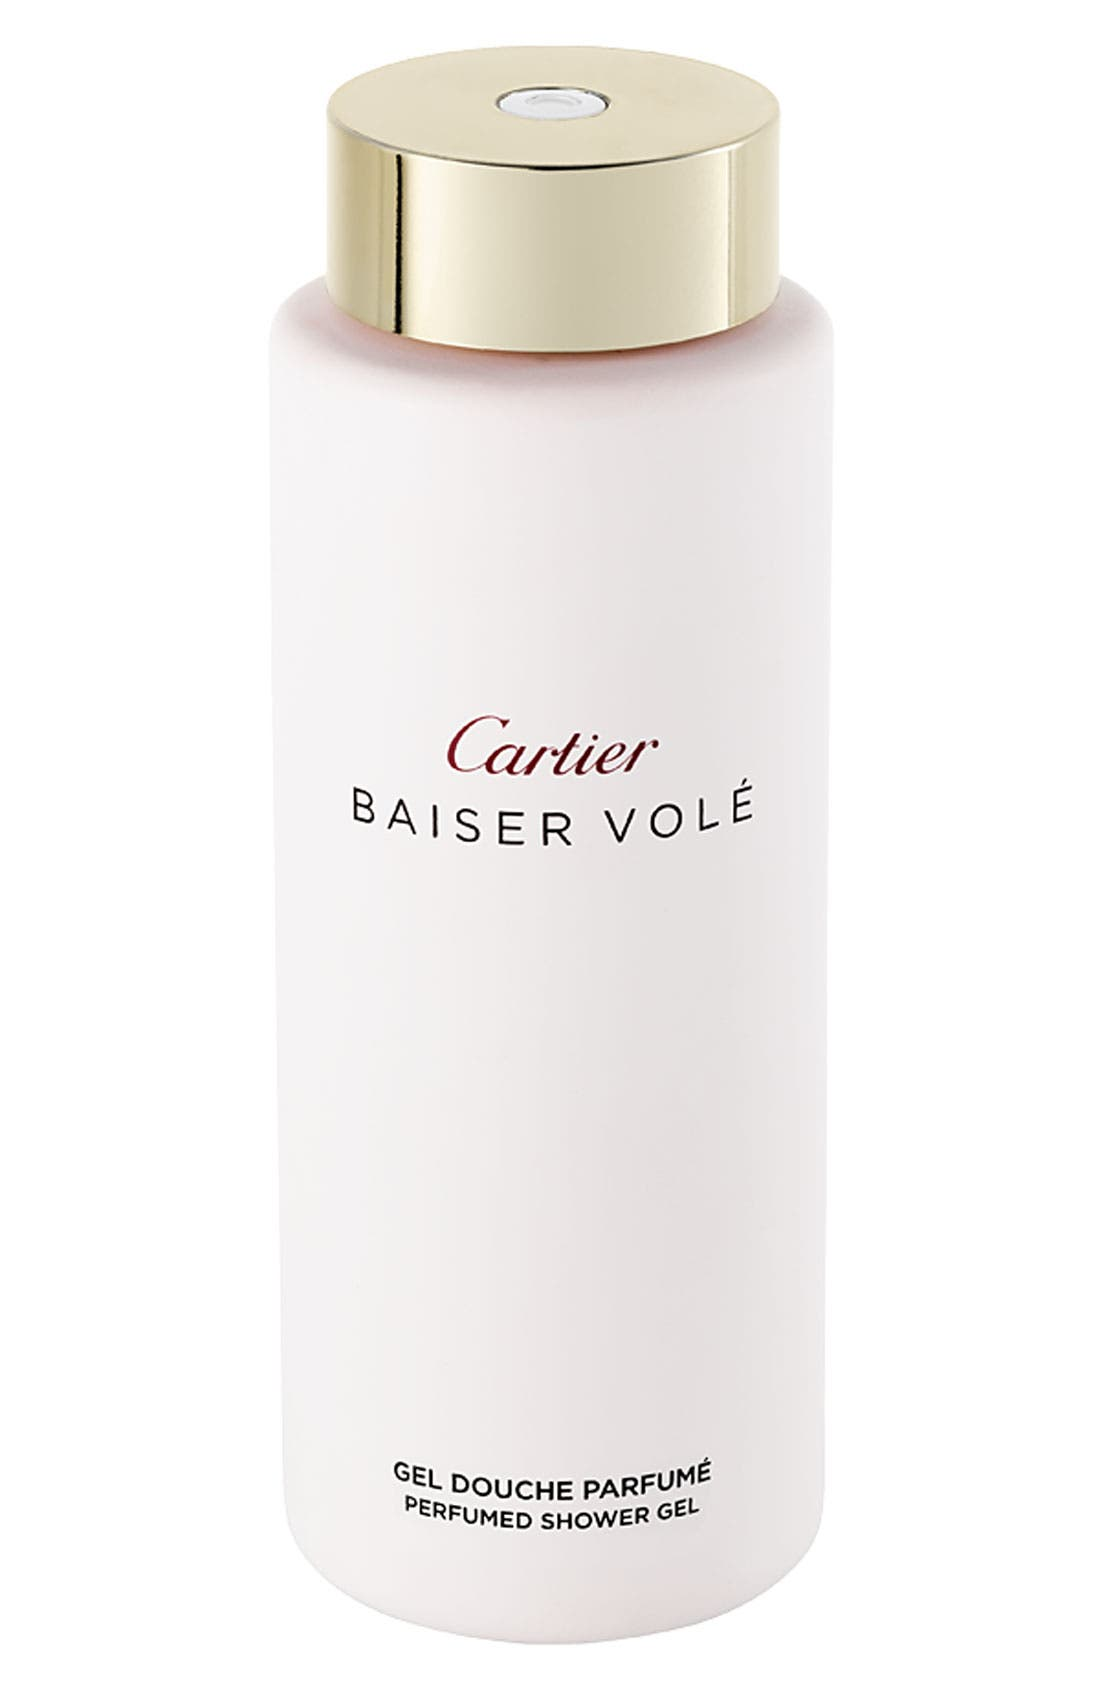 Cartier 'Baiser Volé' Perfumed Shower Gel